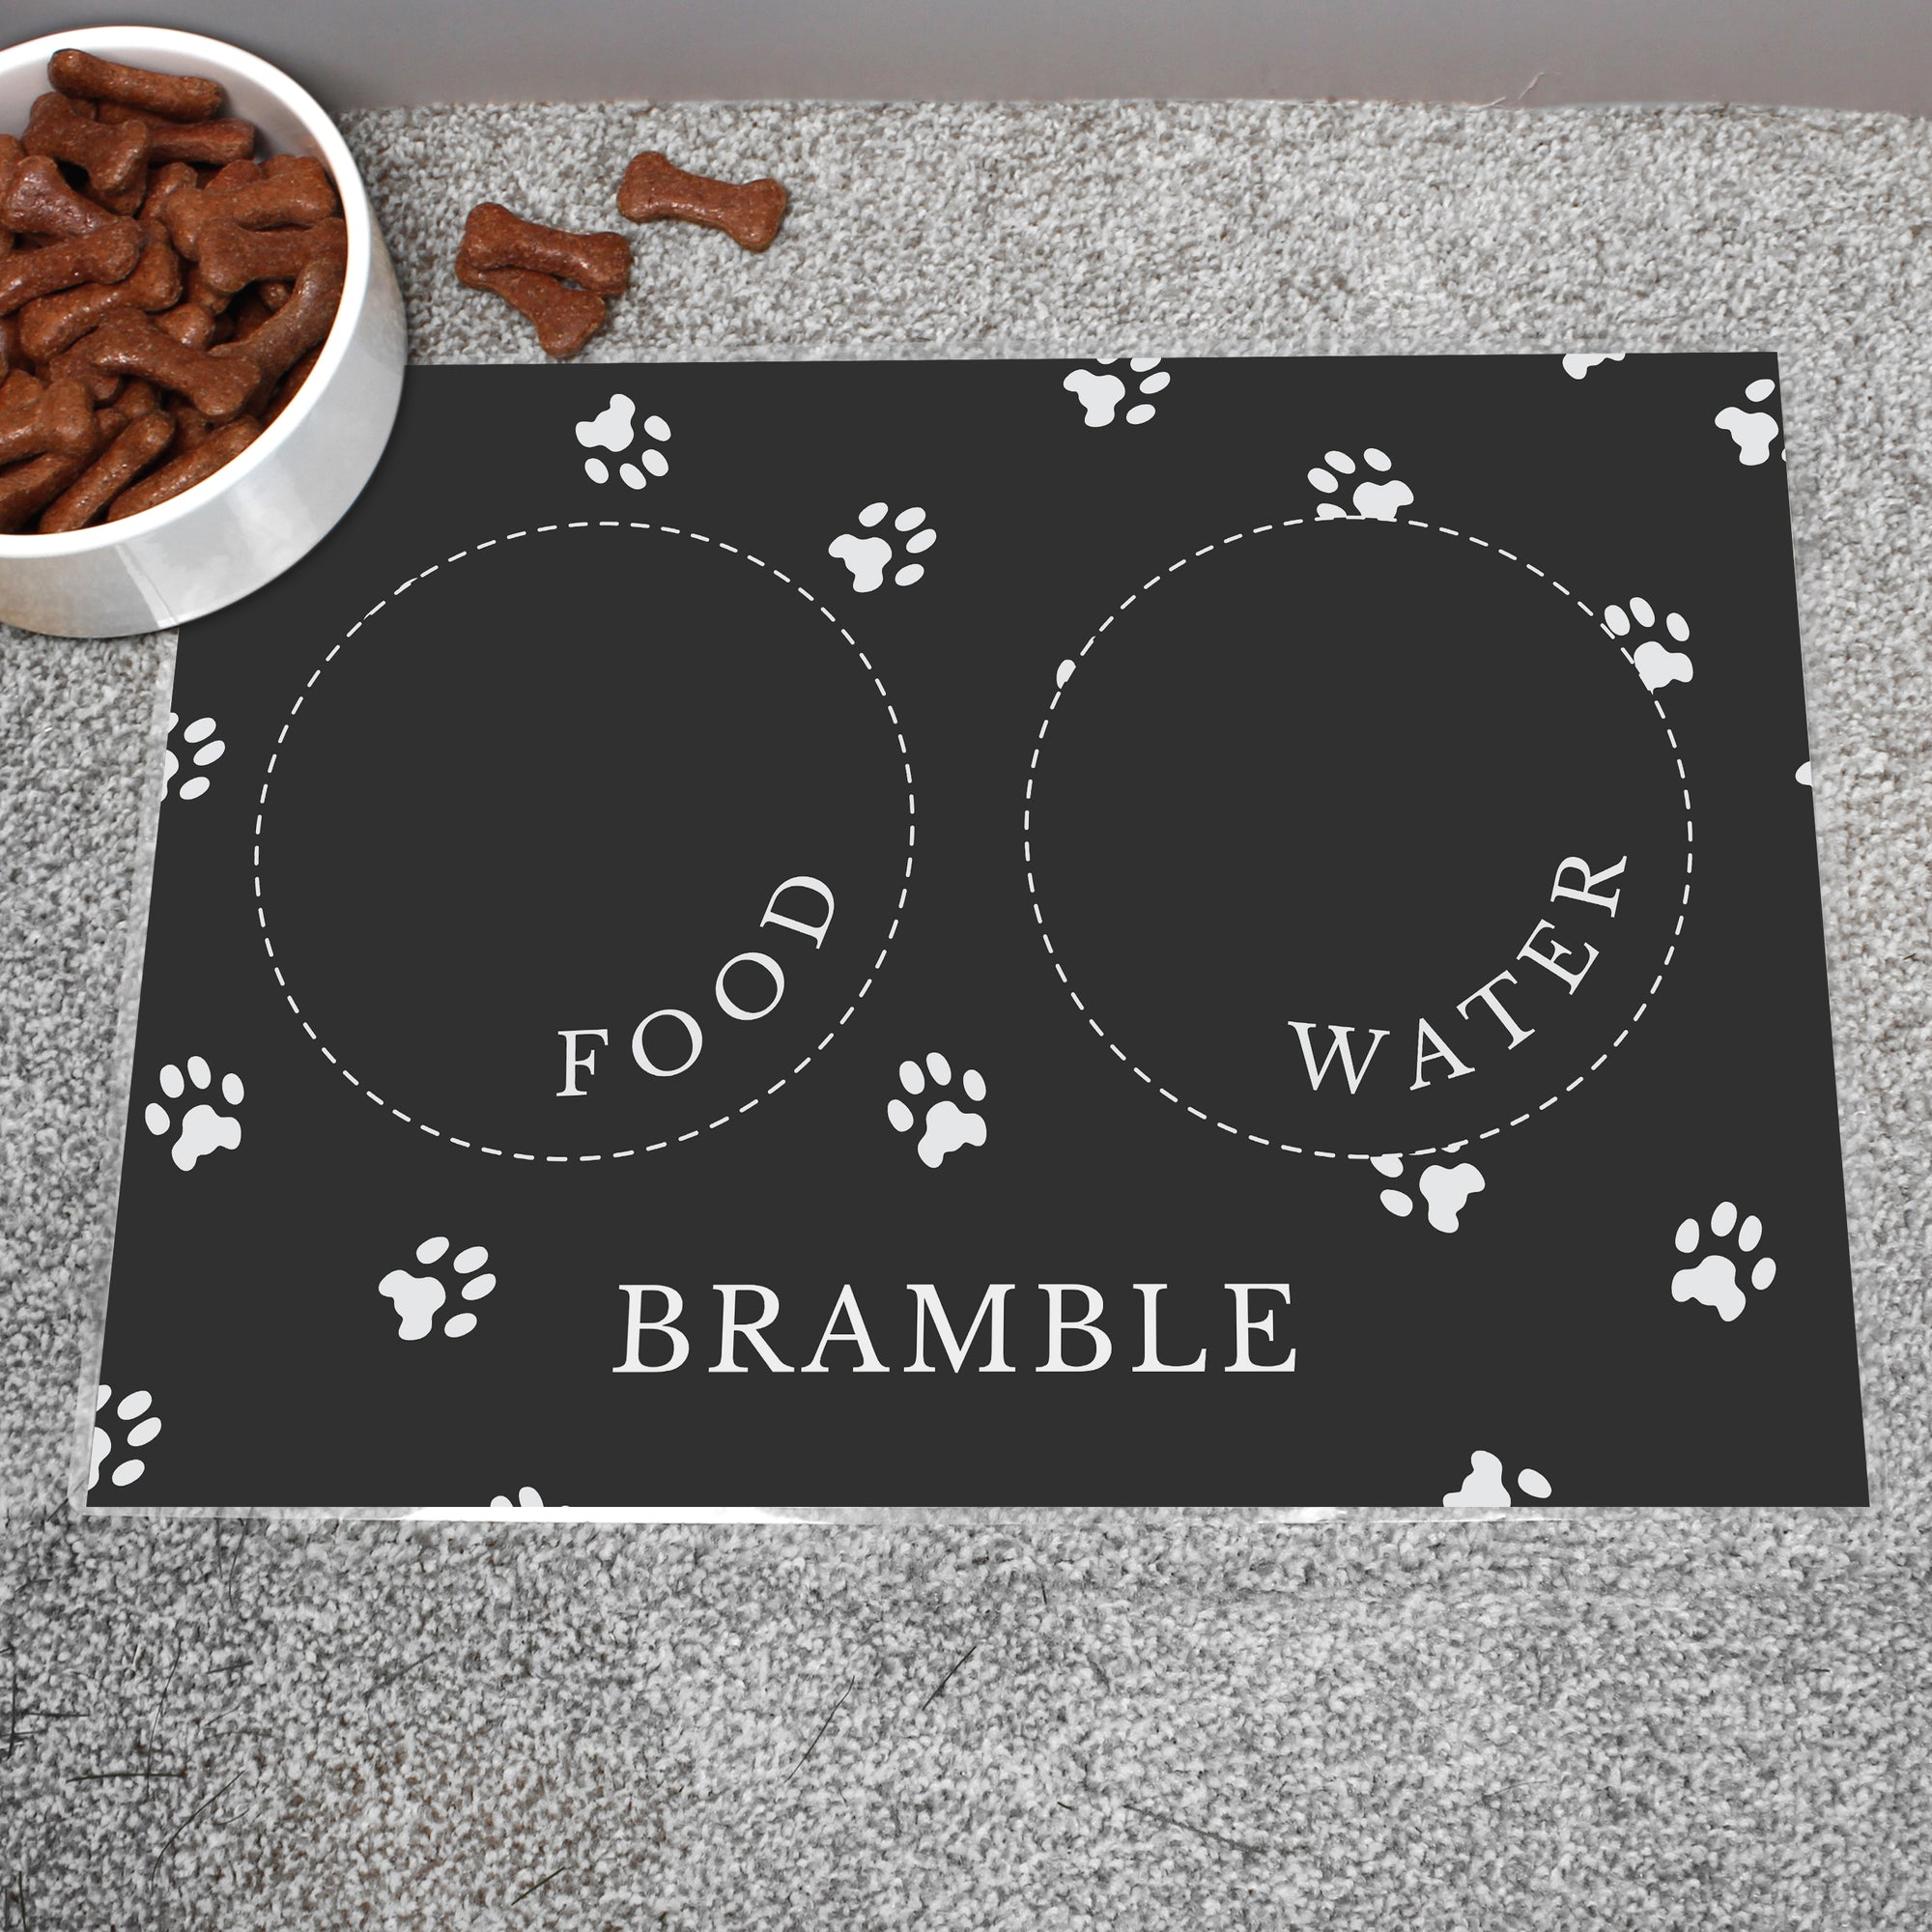 Image of a personalised black pet platemat with white paw print design to protect floors